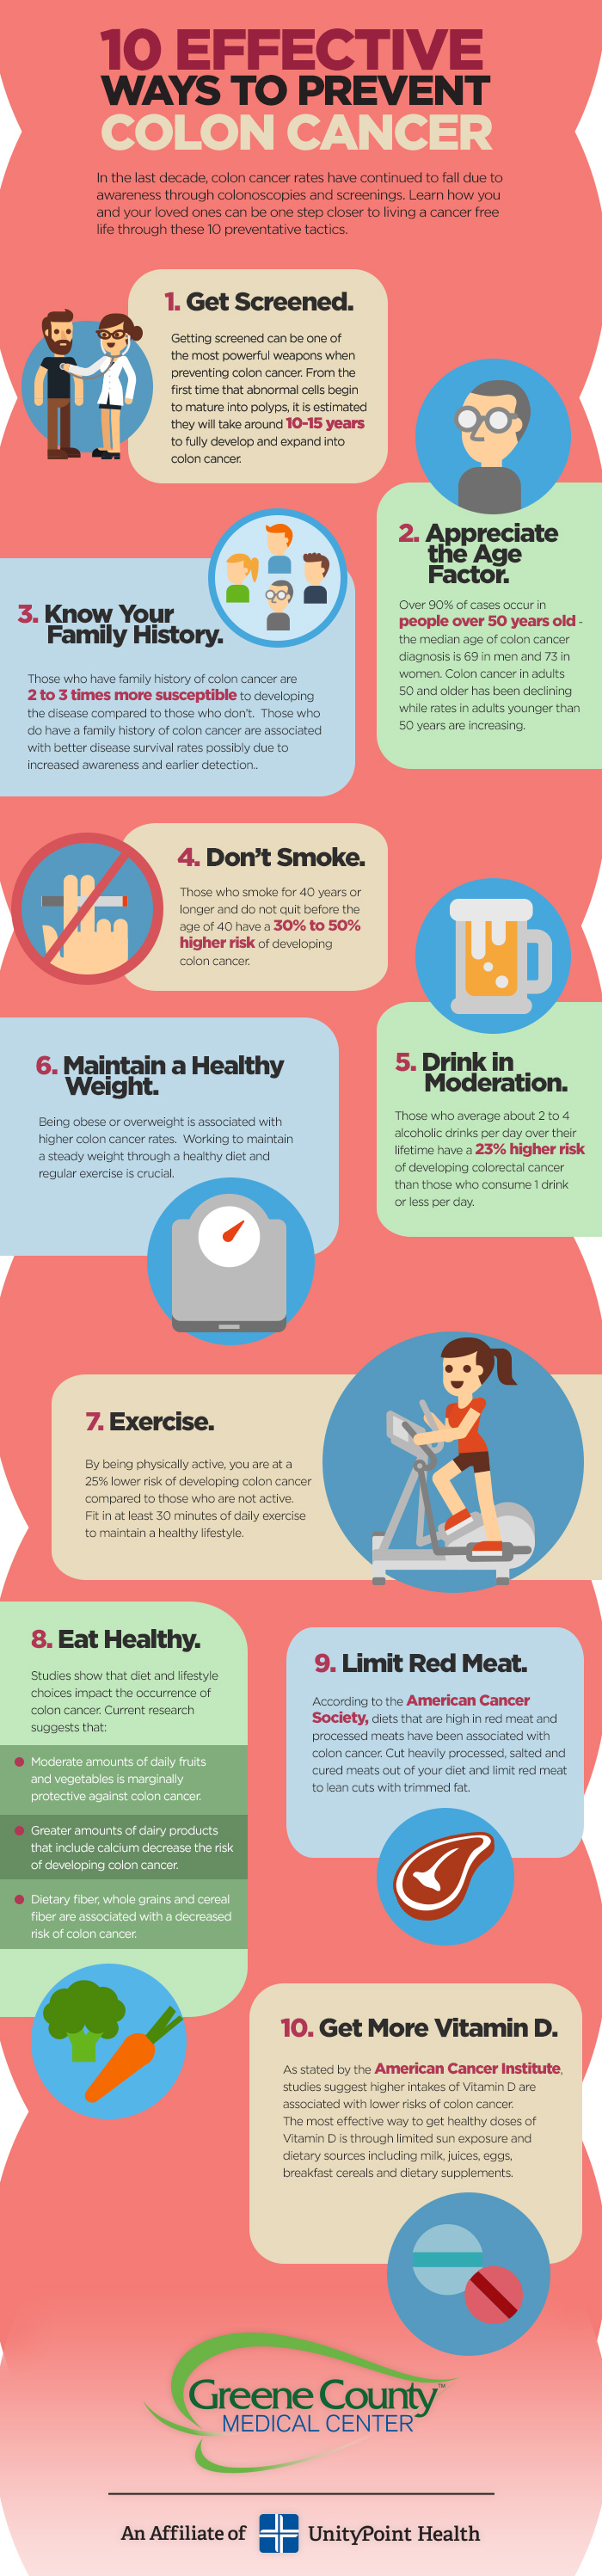 10 Effective Ways To Prevent Colon Cancer Infographic